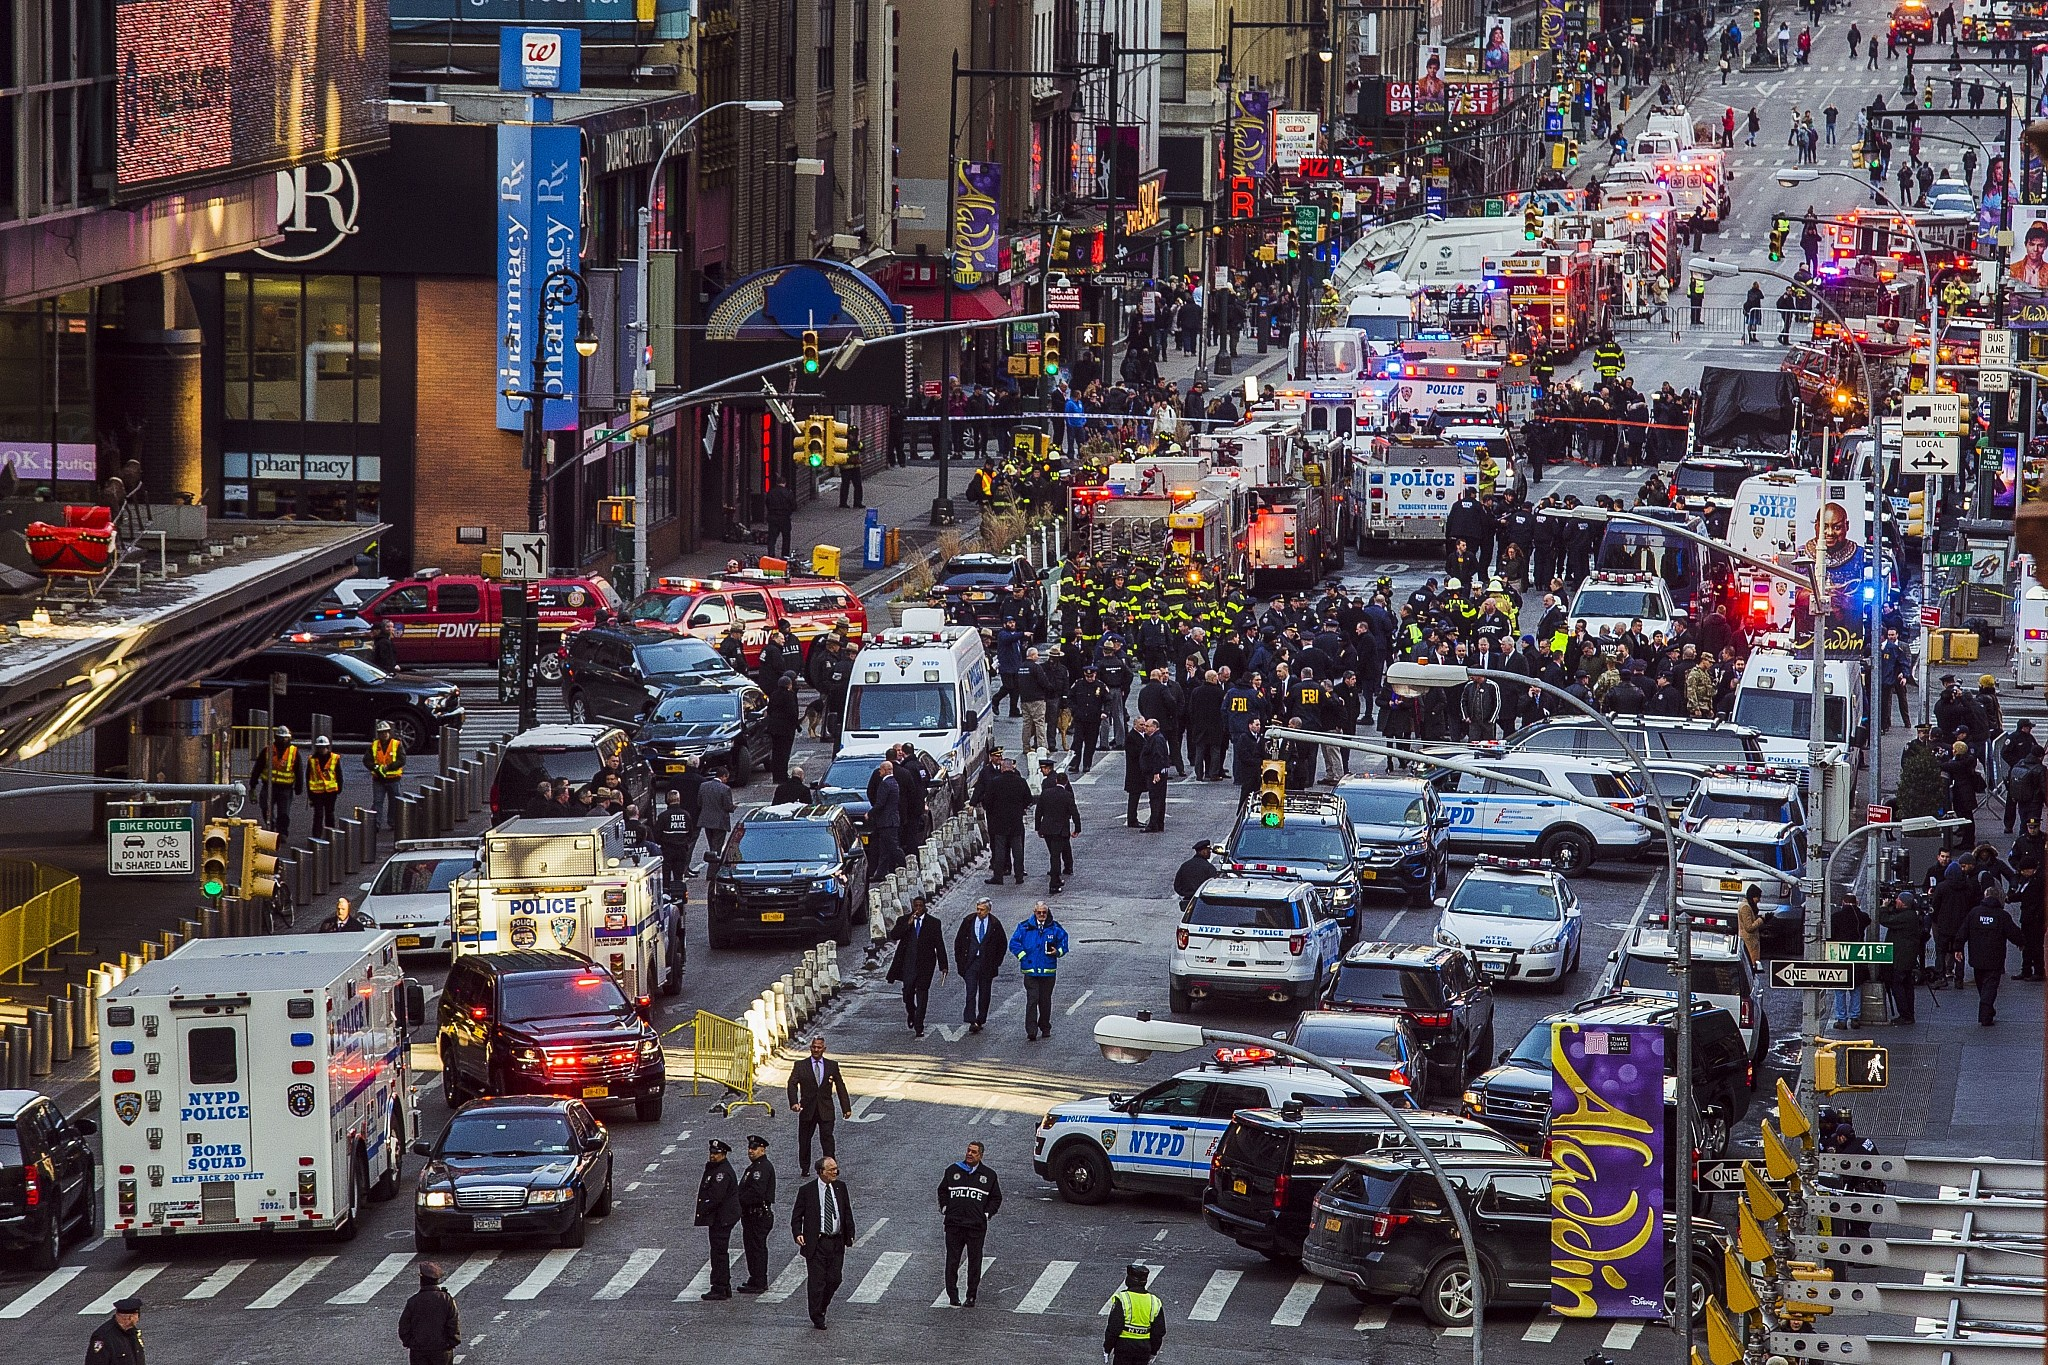 Port Authority Bombing Suspect >> New York bombing suspect said to claim he was angry at Israel over Gaza | The Times of Israel